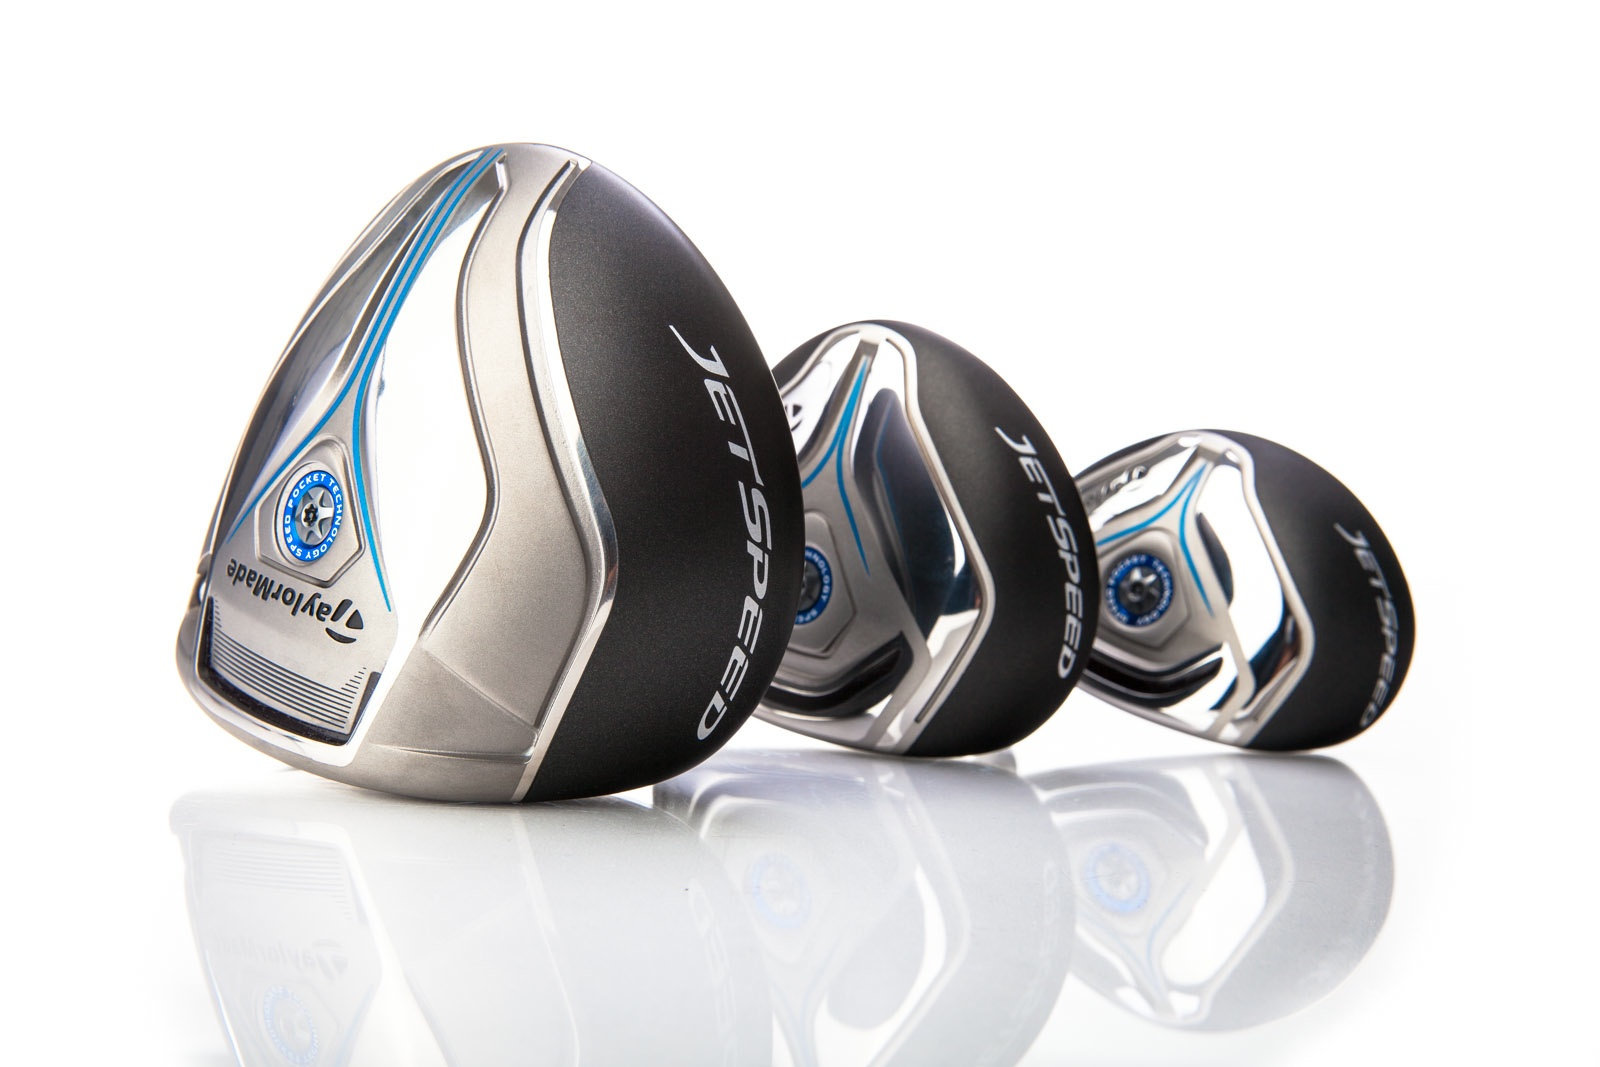 JetSpeed by TaylorMade – pics and details